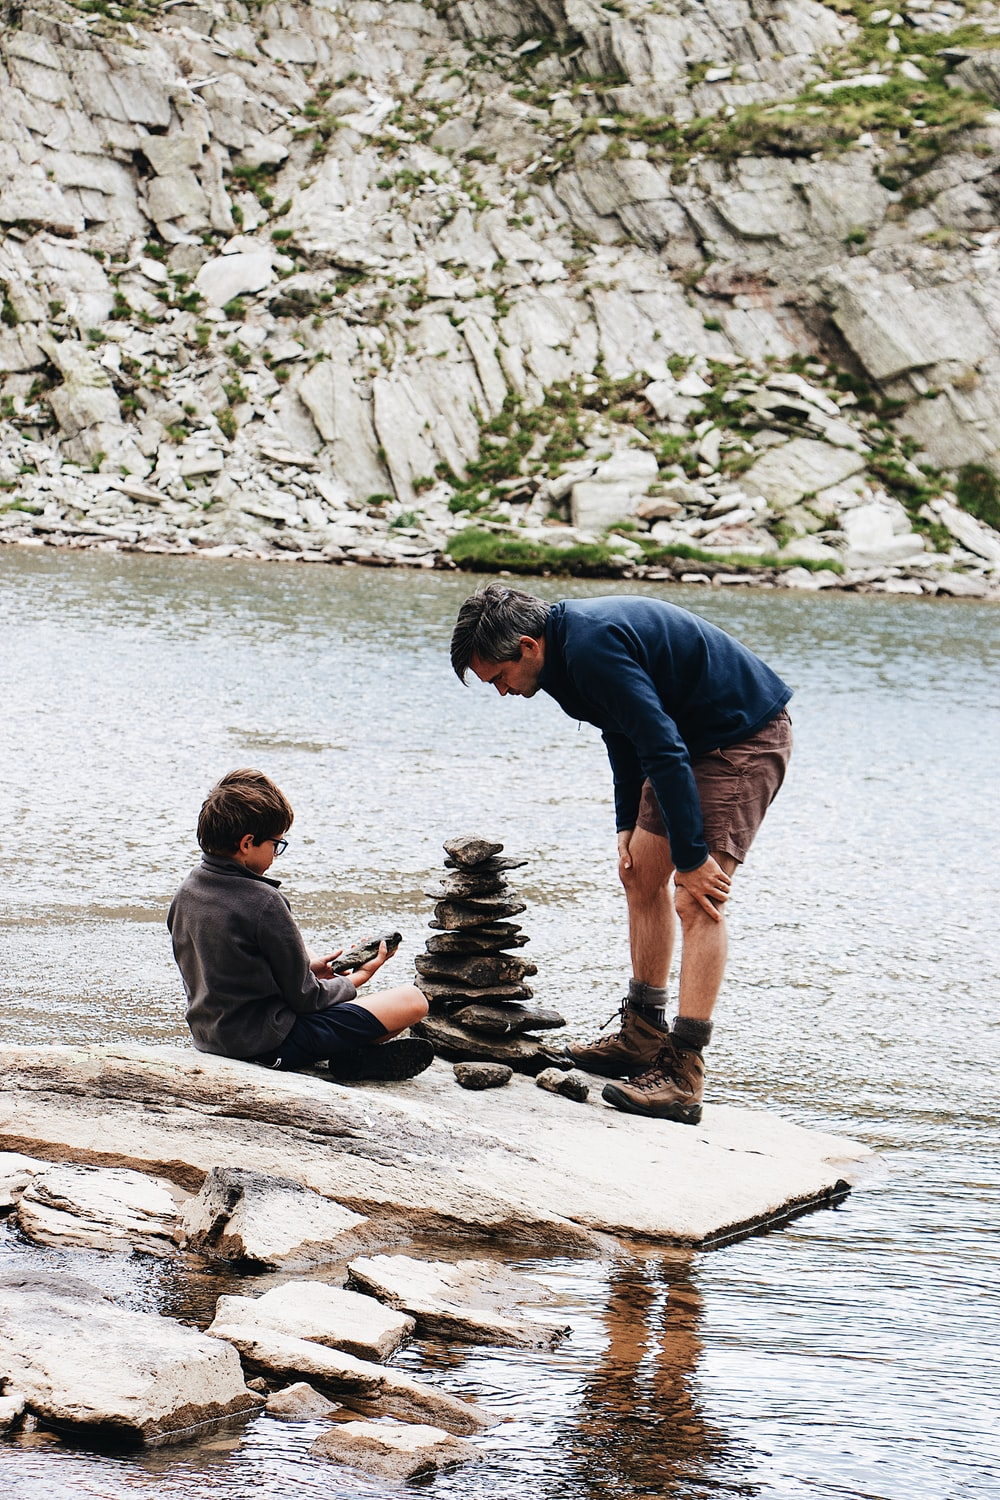 boy and man beside river during daytime